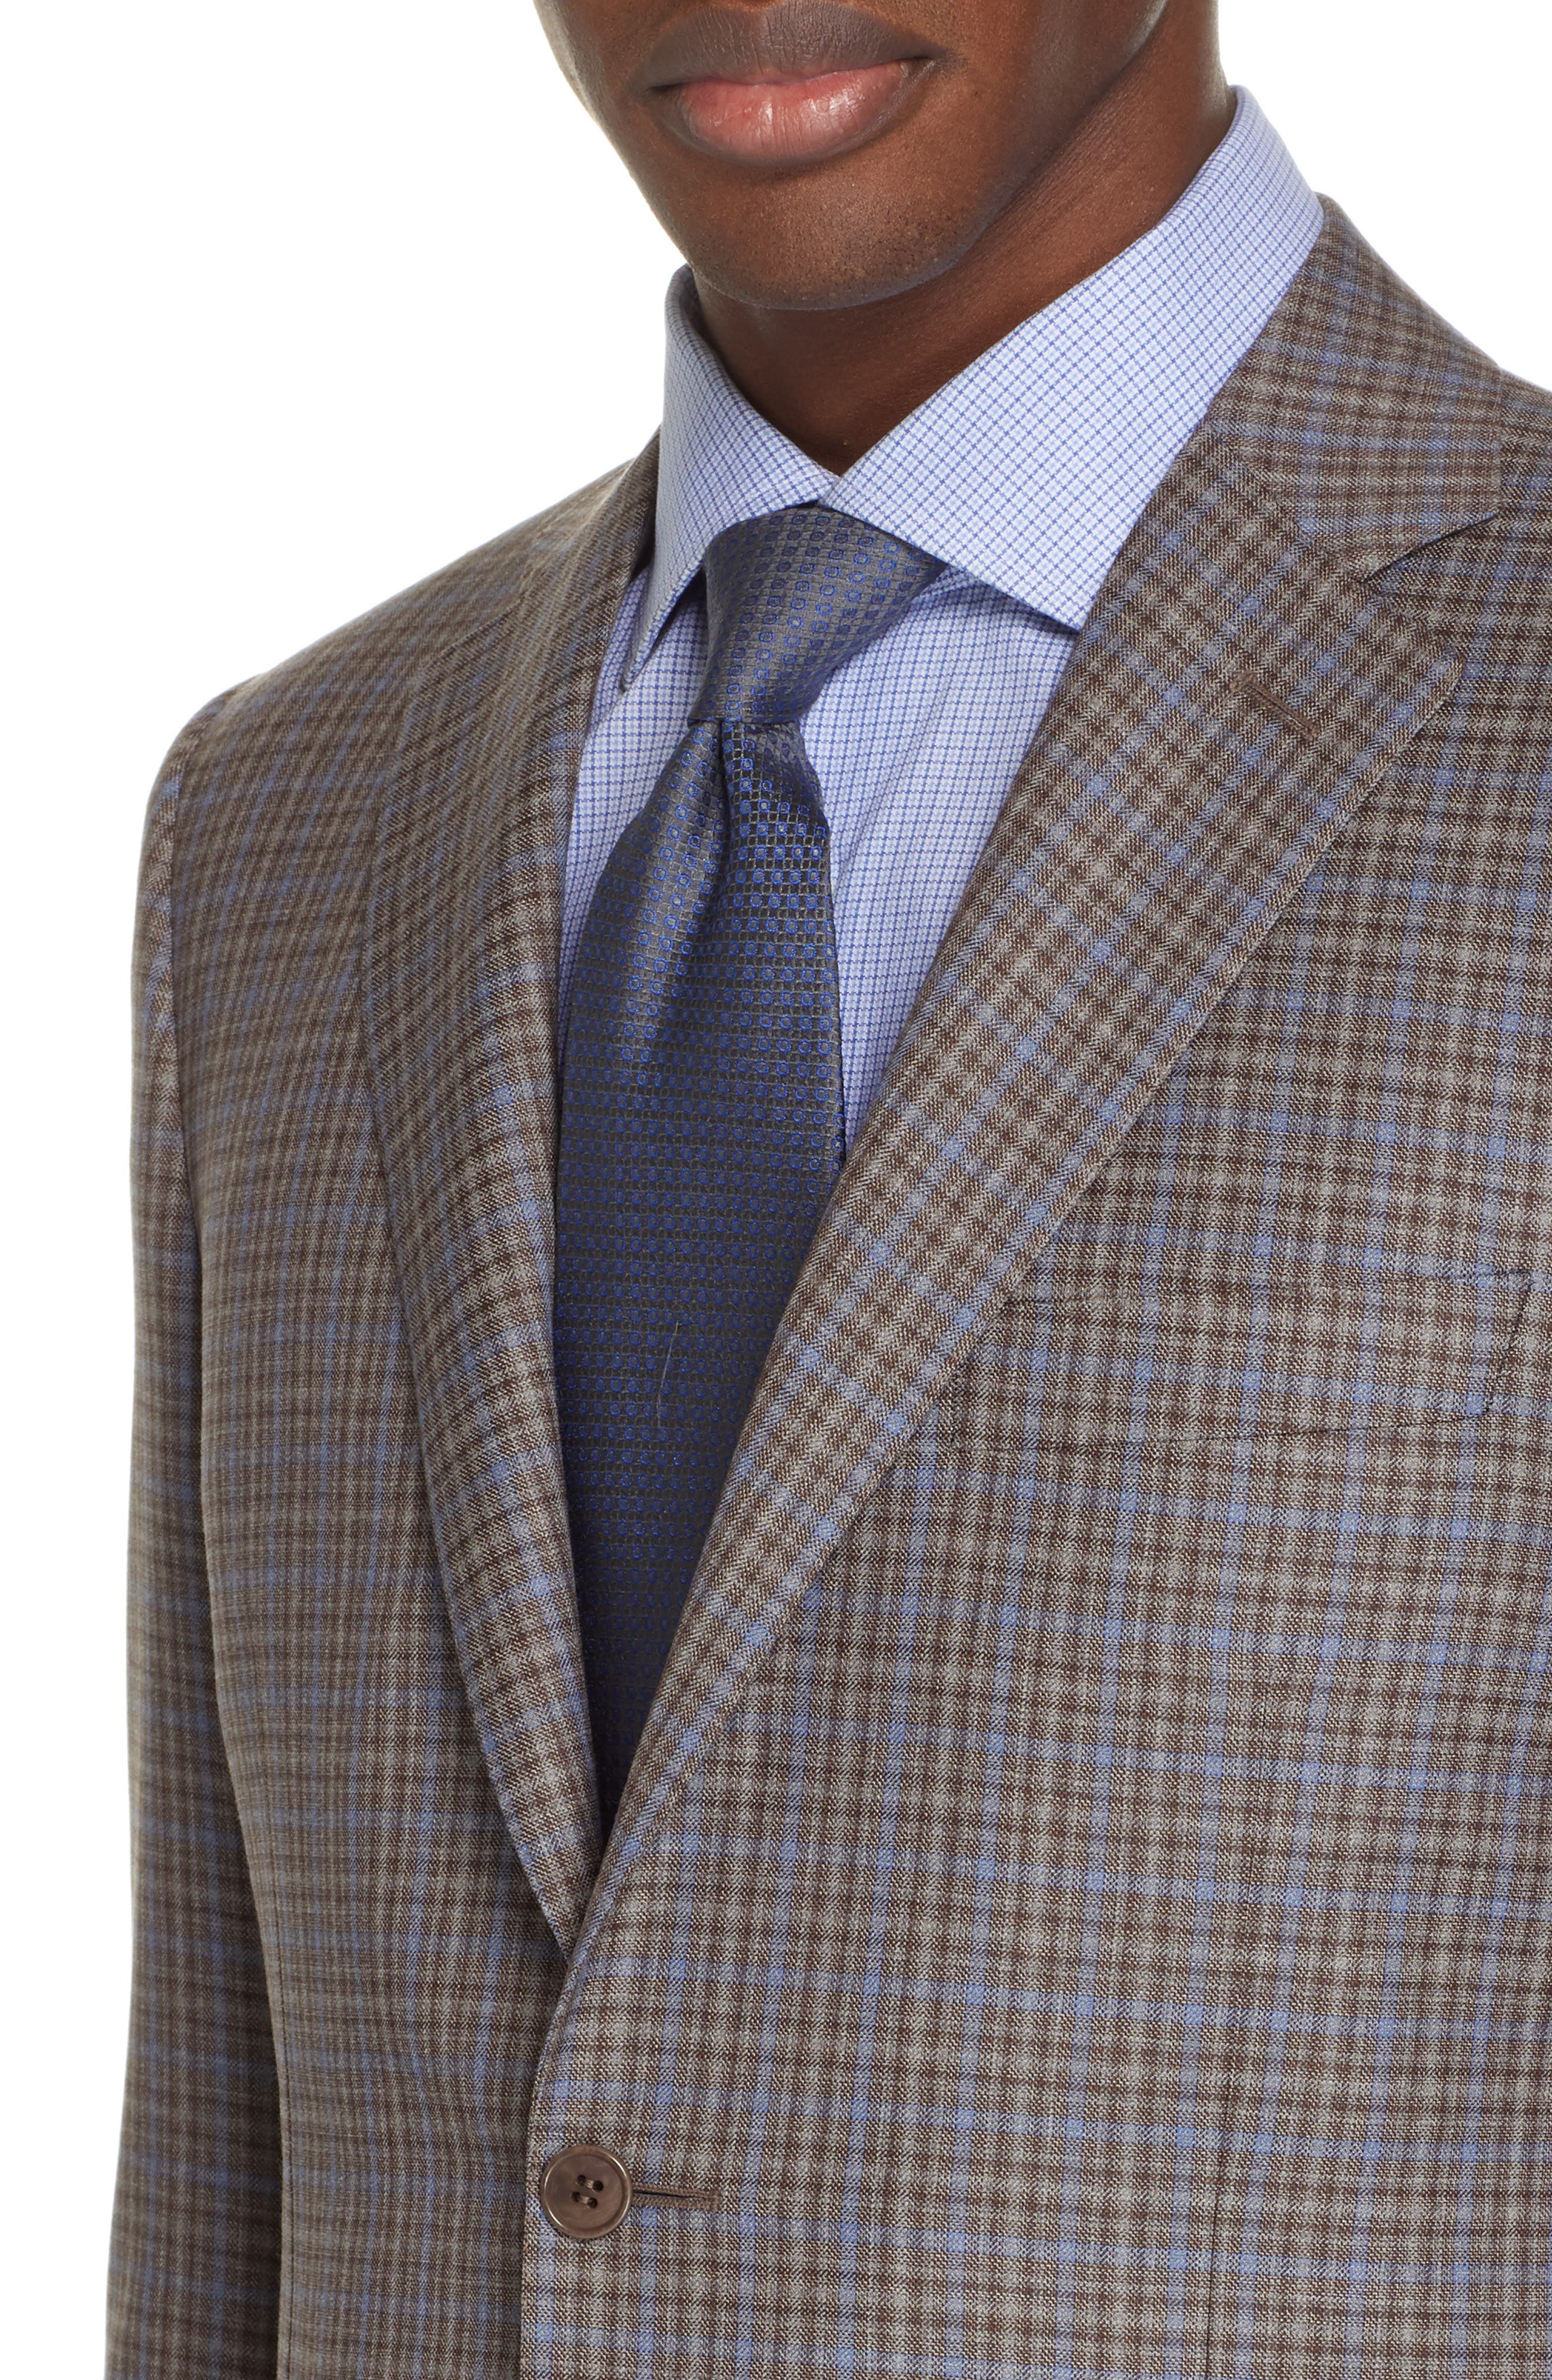 CANALI, Sienna Classic Fit Plaid Wool Sport Coat, Alternate thumbnail 4, color, BROWN